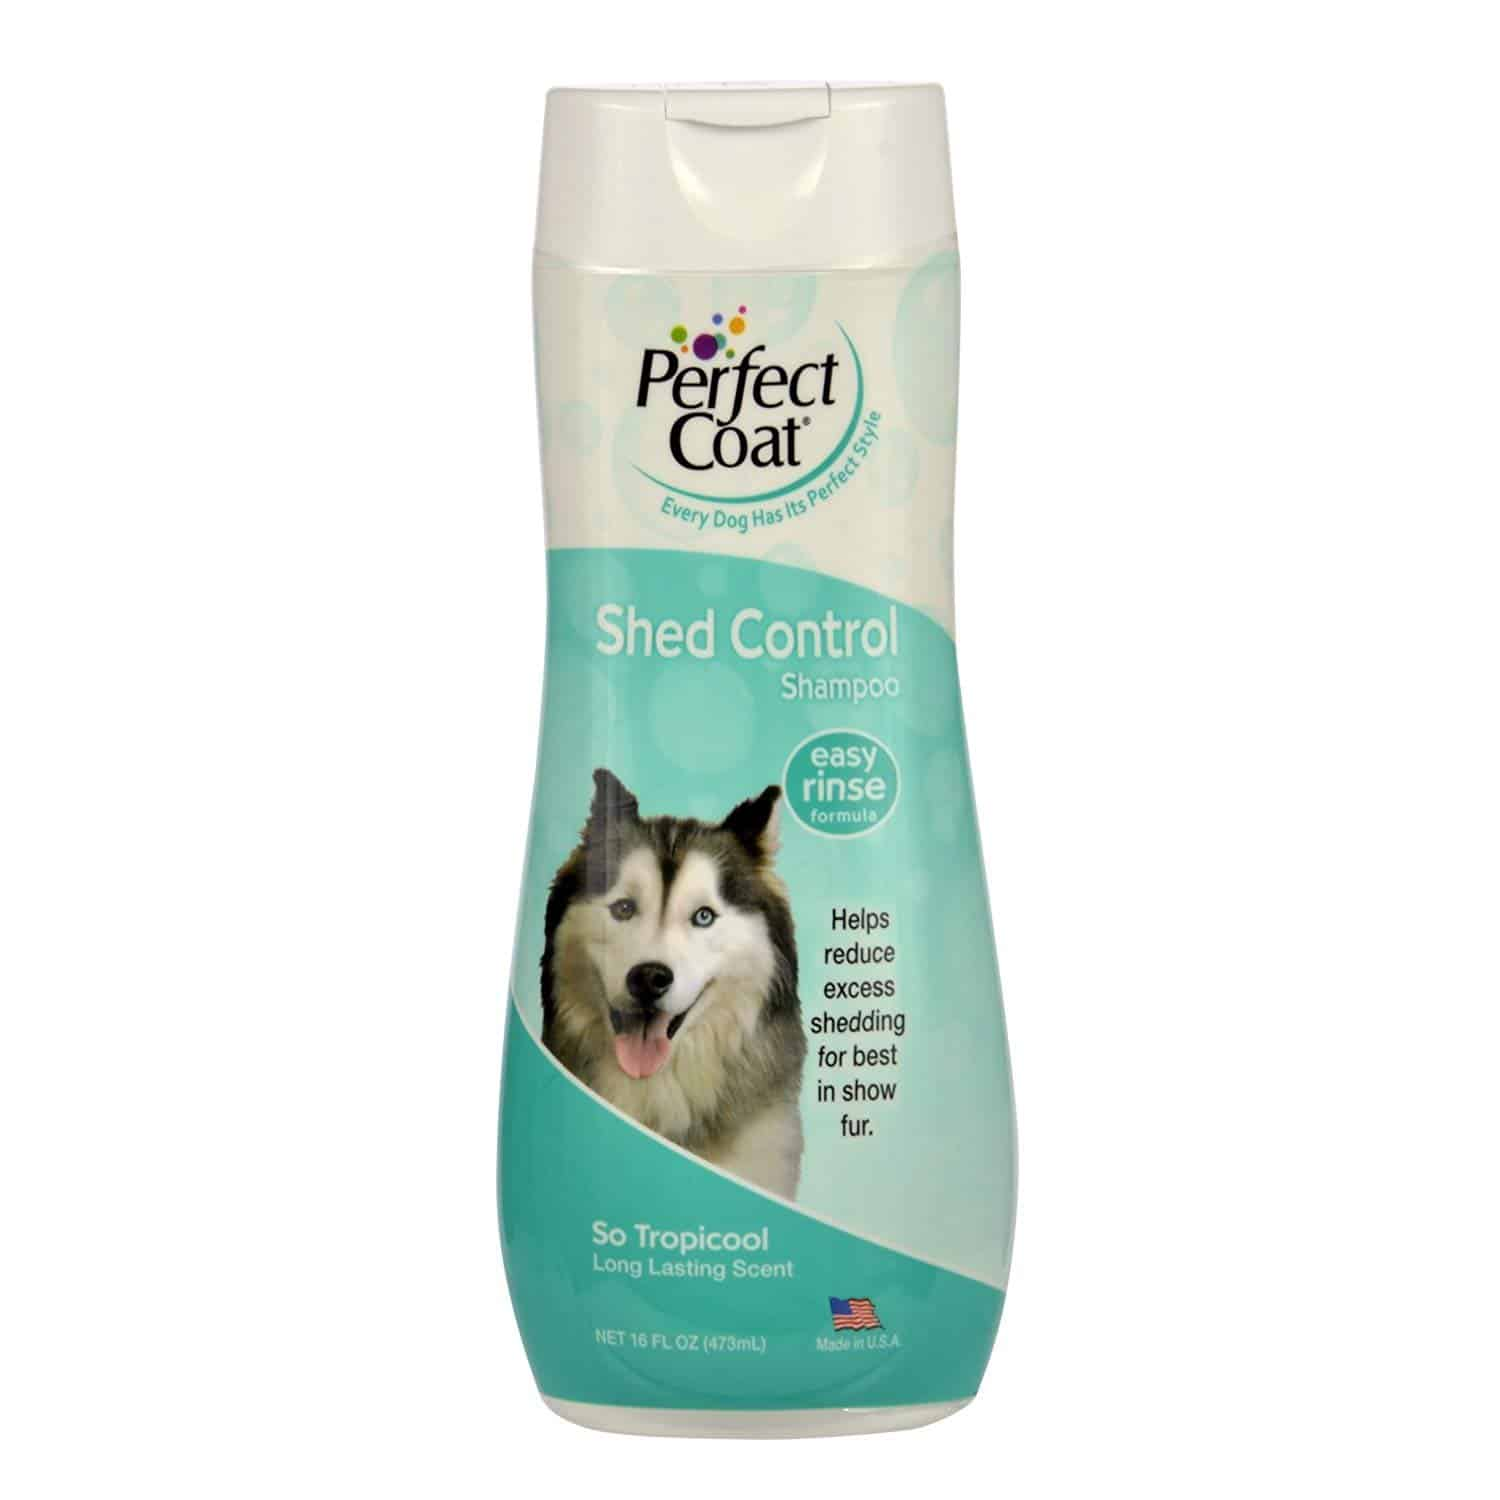 Perfect Coat Shed Control Shampoo